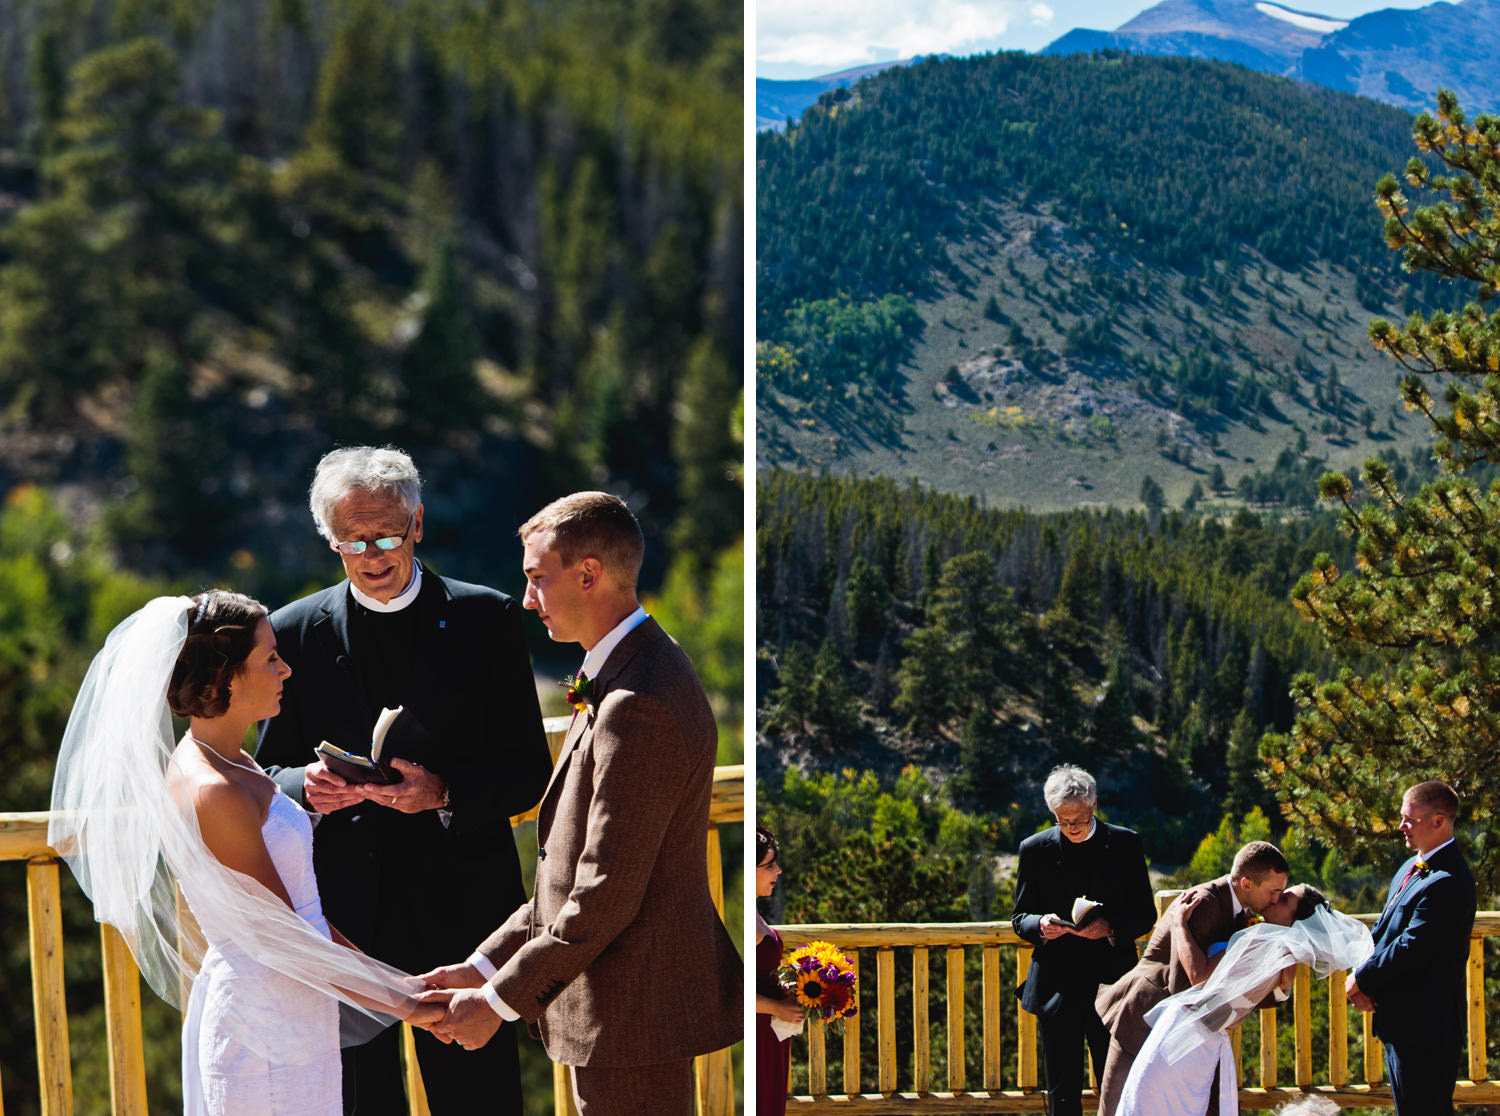 ymca-of-the-rockies-wedding-estes-park-016.jpg